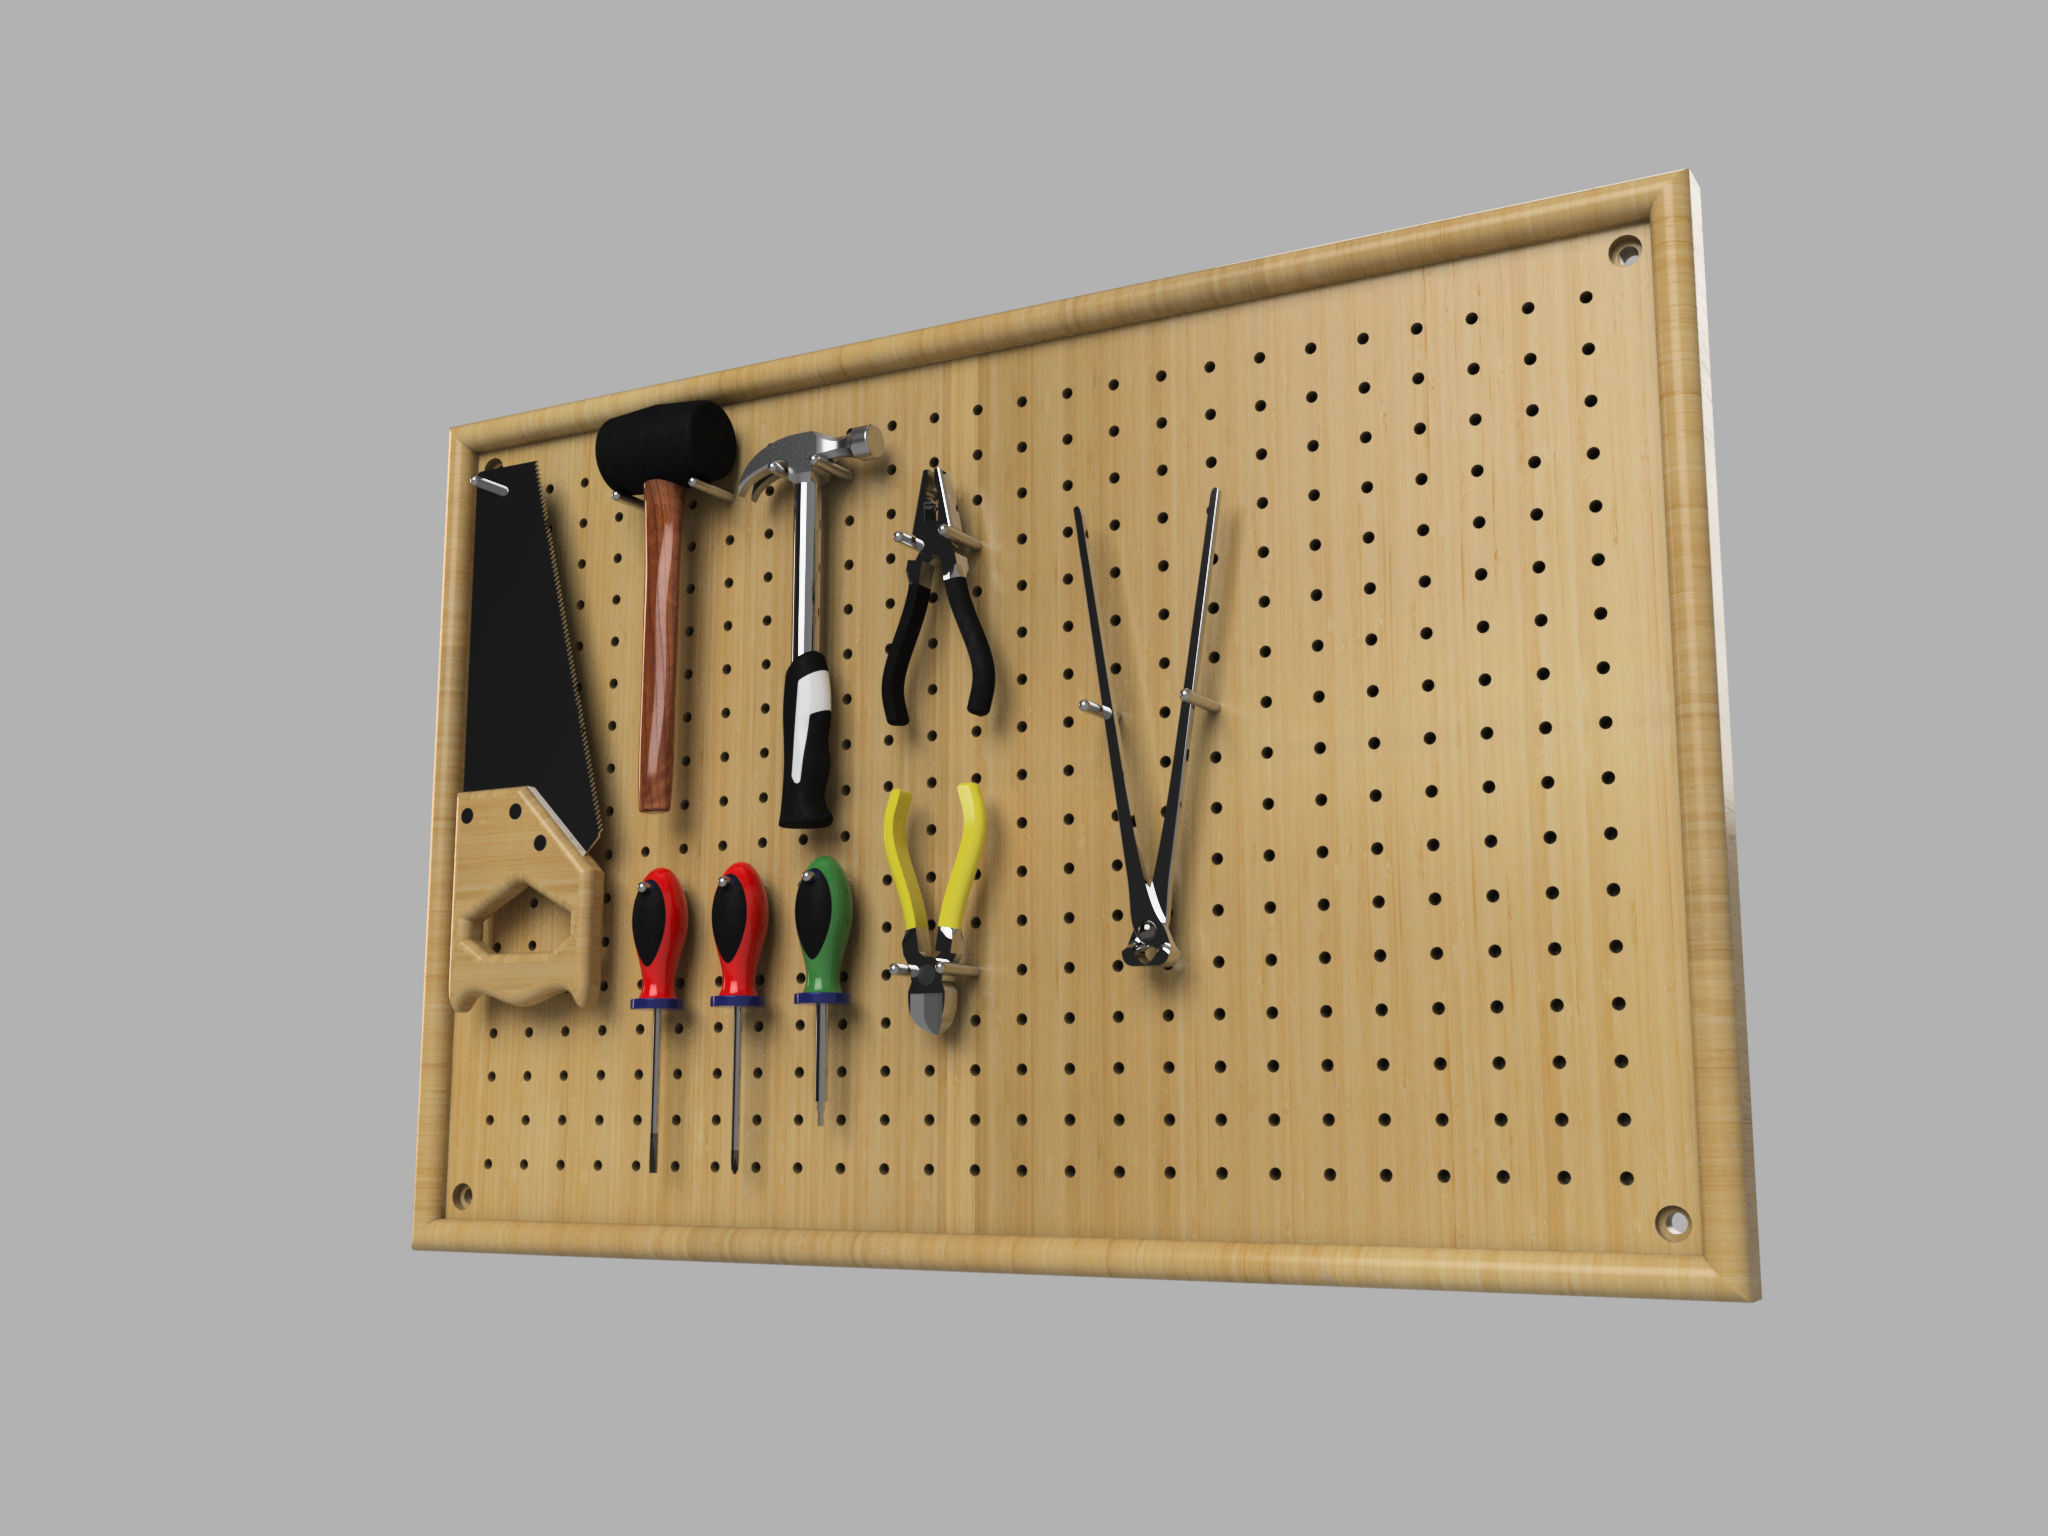 Wall mounted tool rack autodesk online gallery for Online rendering tool